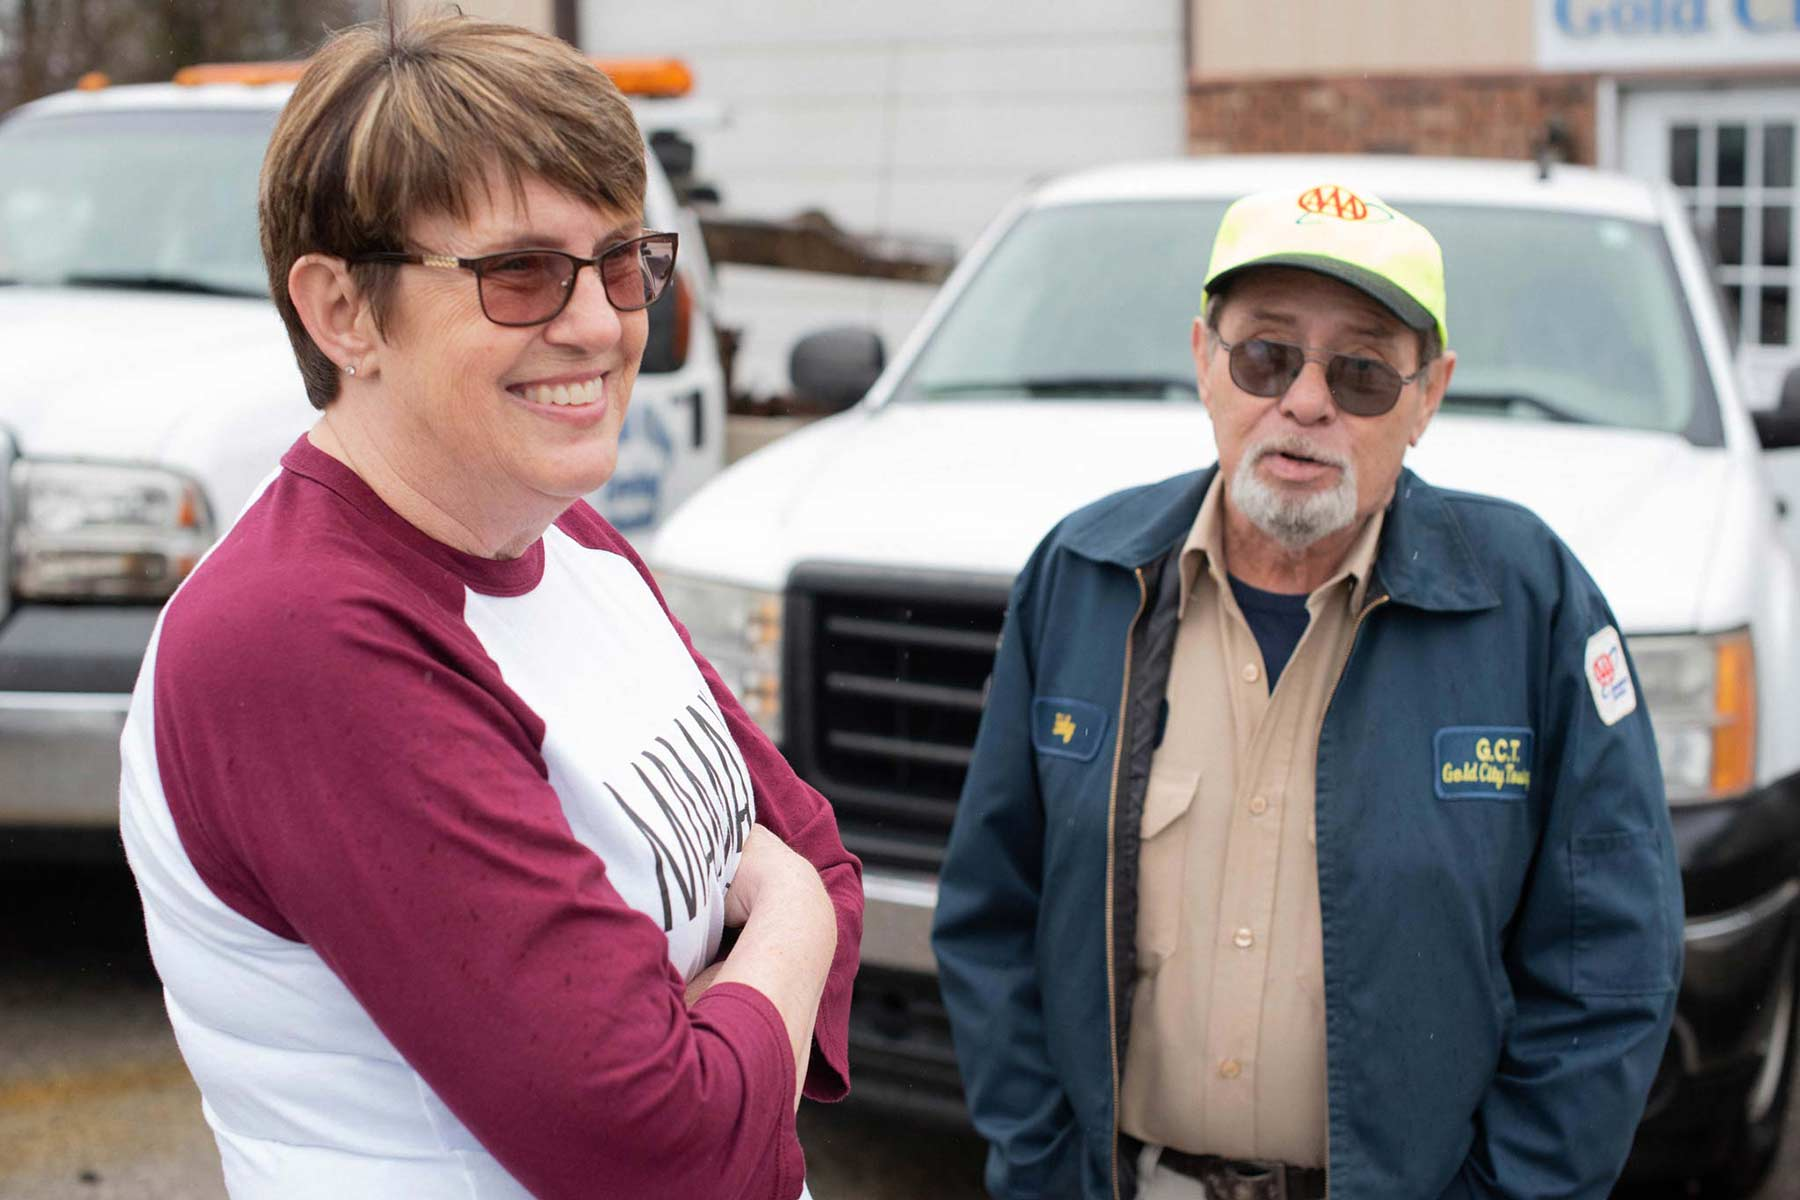 Debbie crosses her arm and smiles in the parking lot of her family's towing business with her husband beside her.